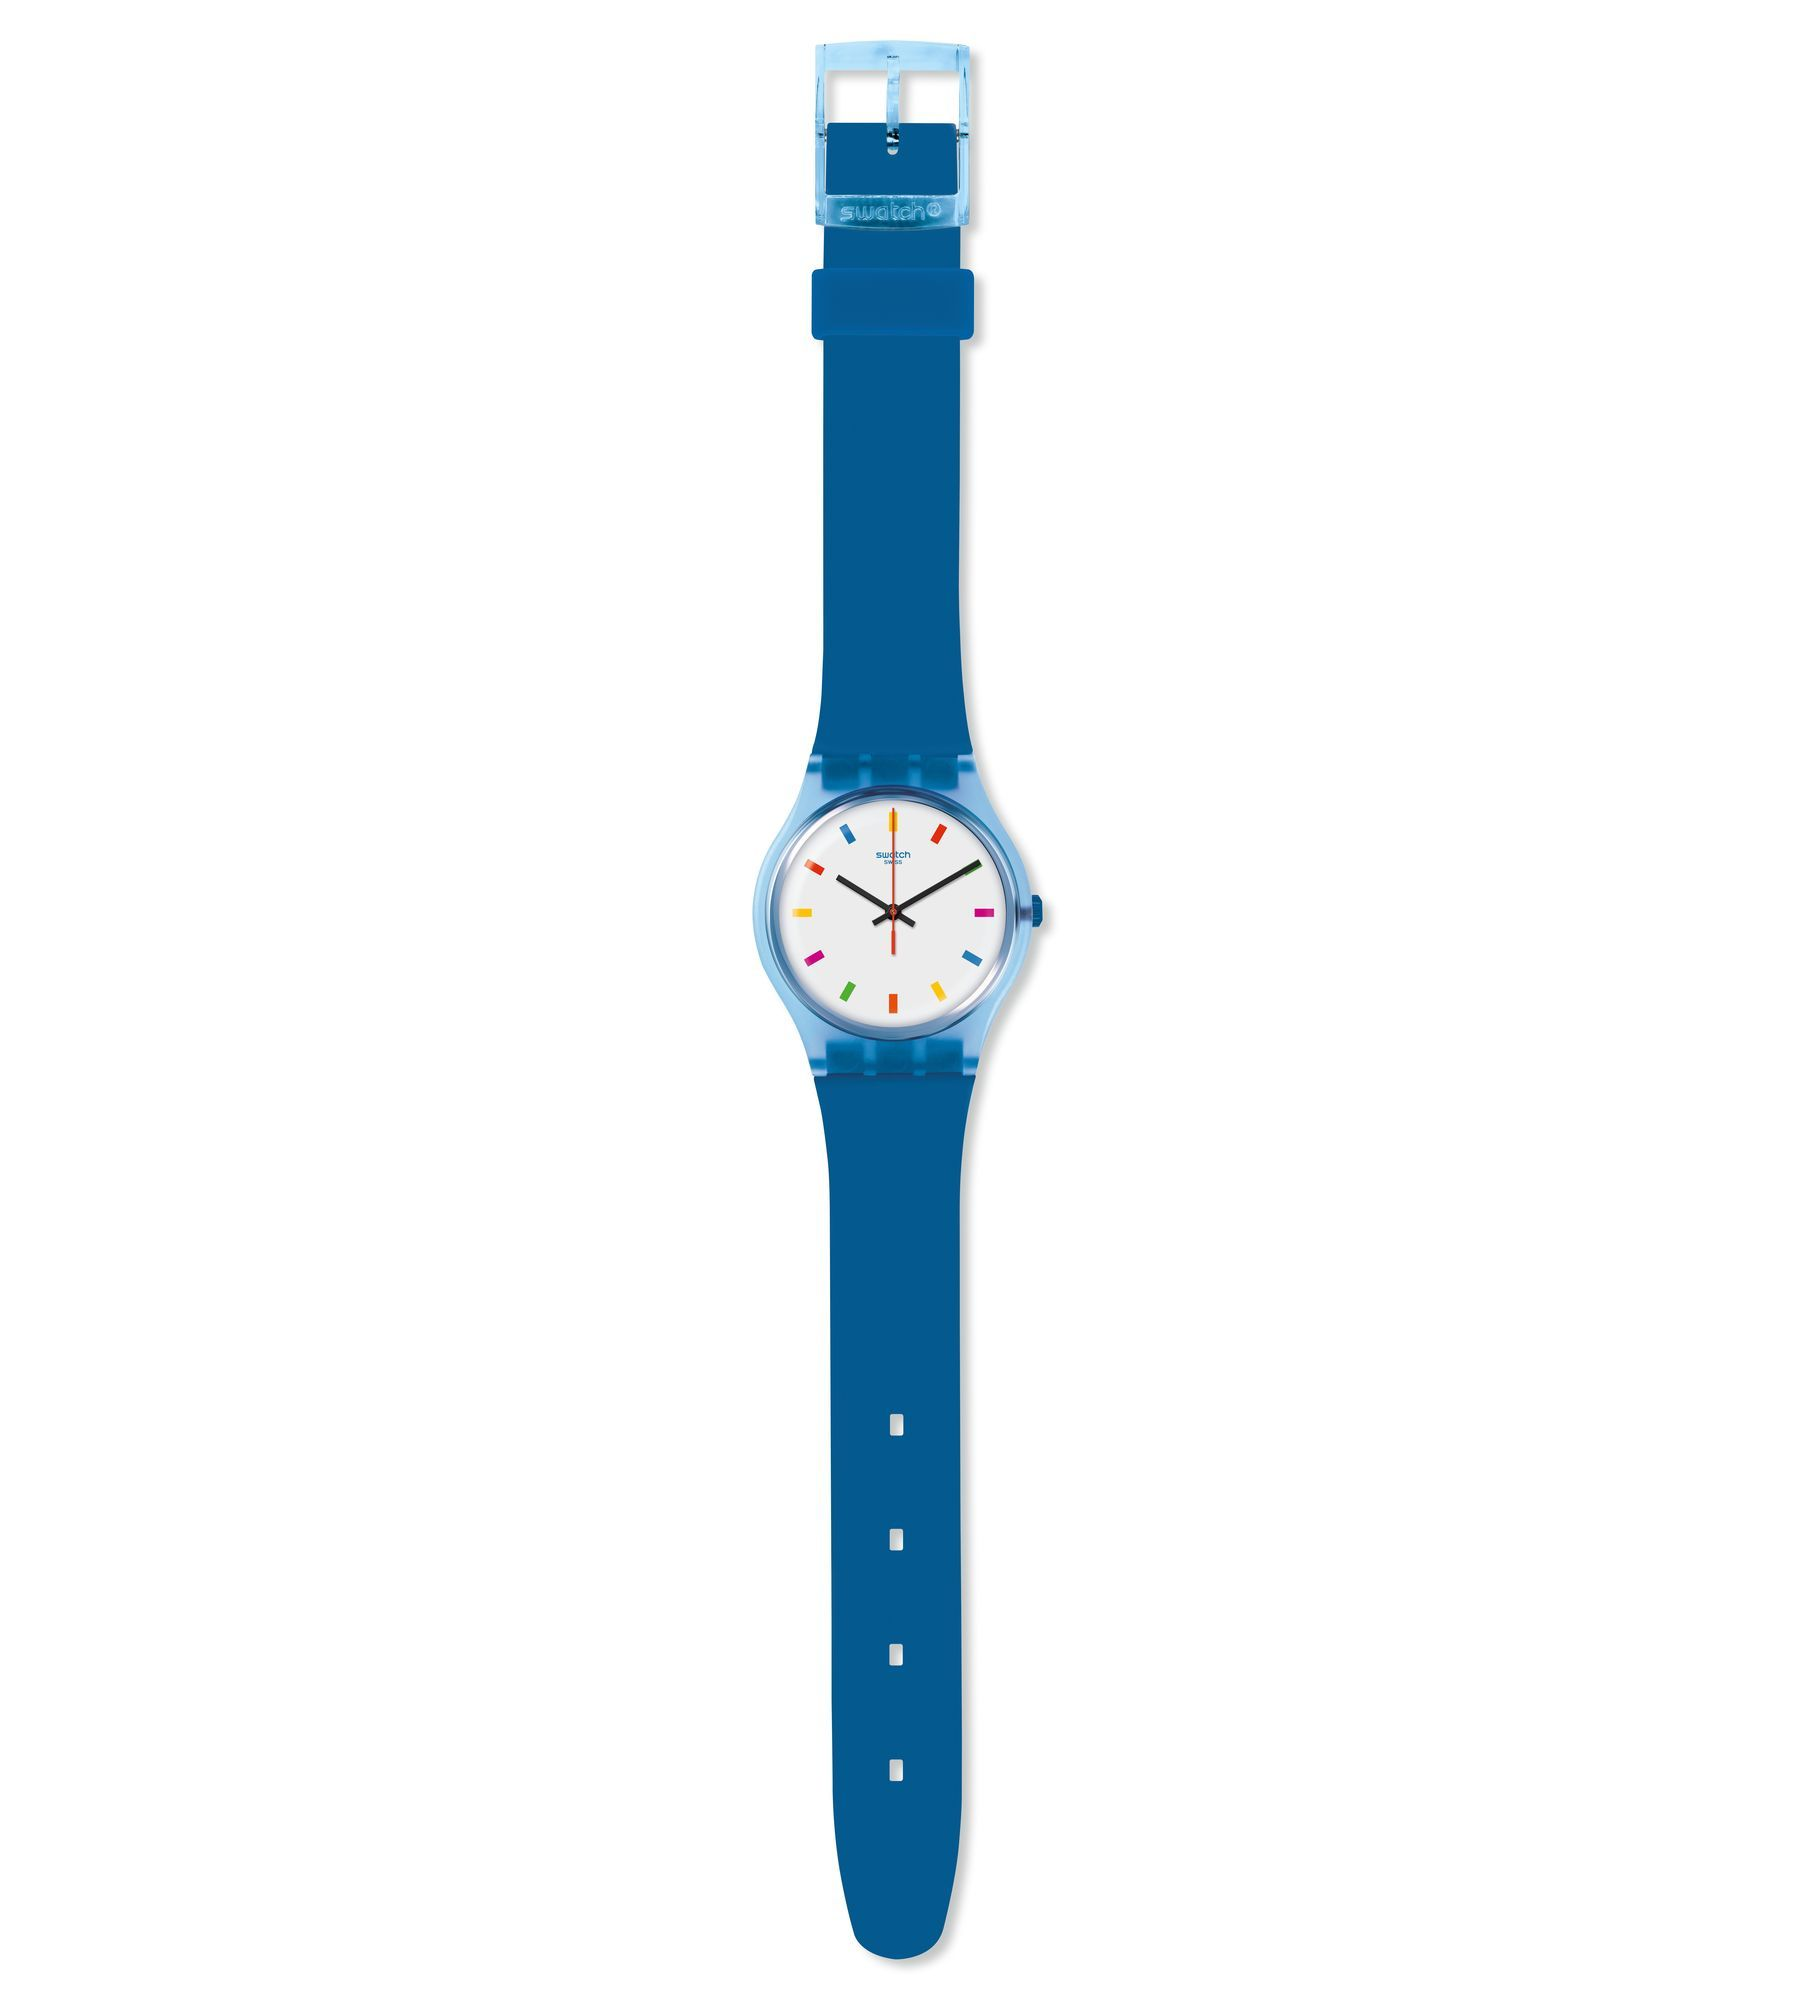 Swatch 174 United States Maxi Wall Clocks Maxi Color Square